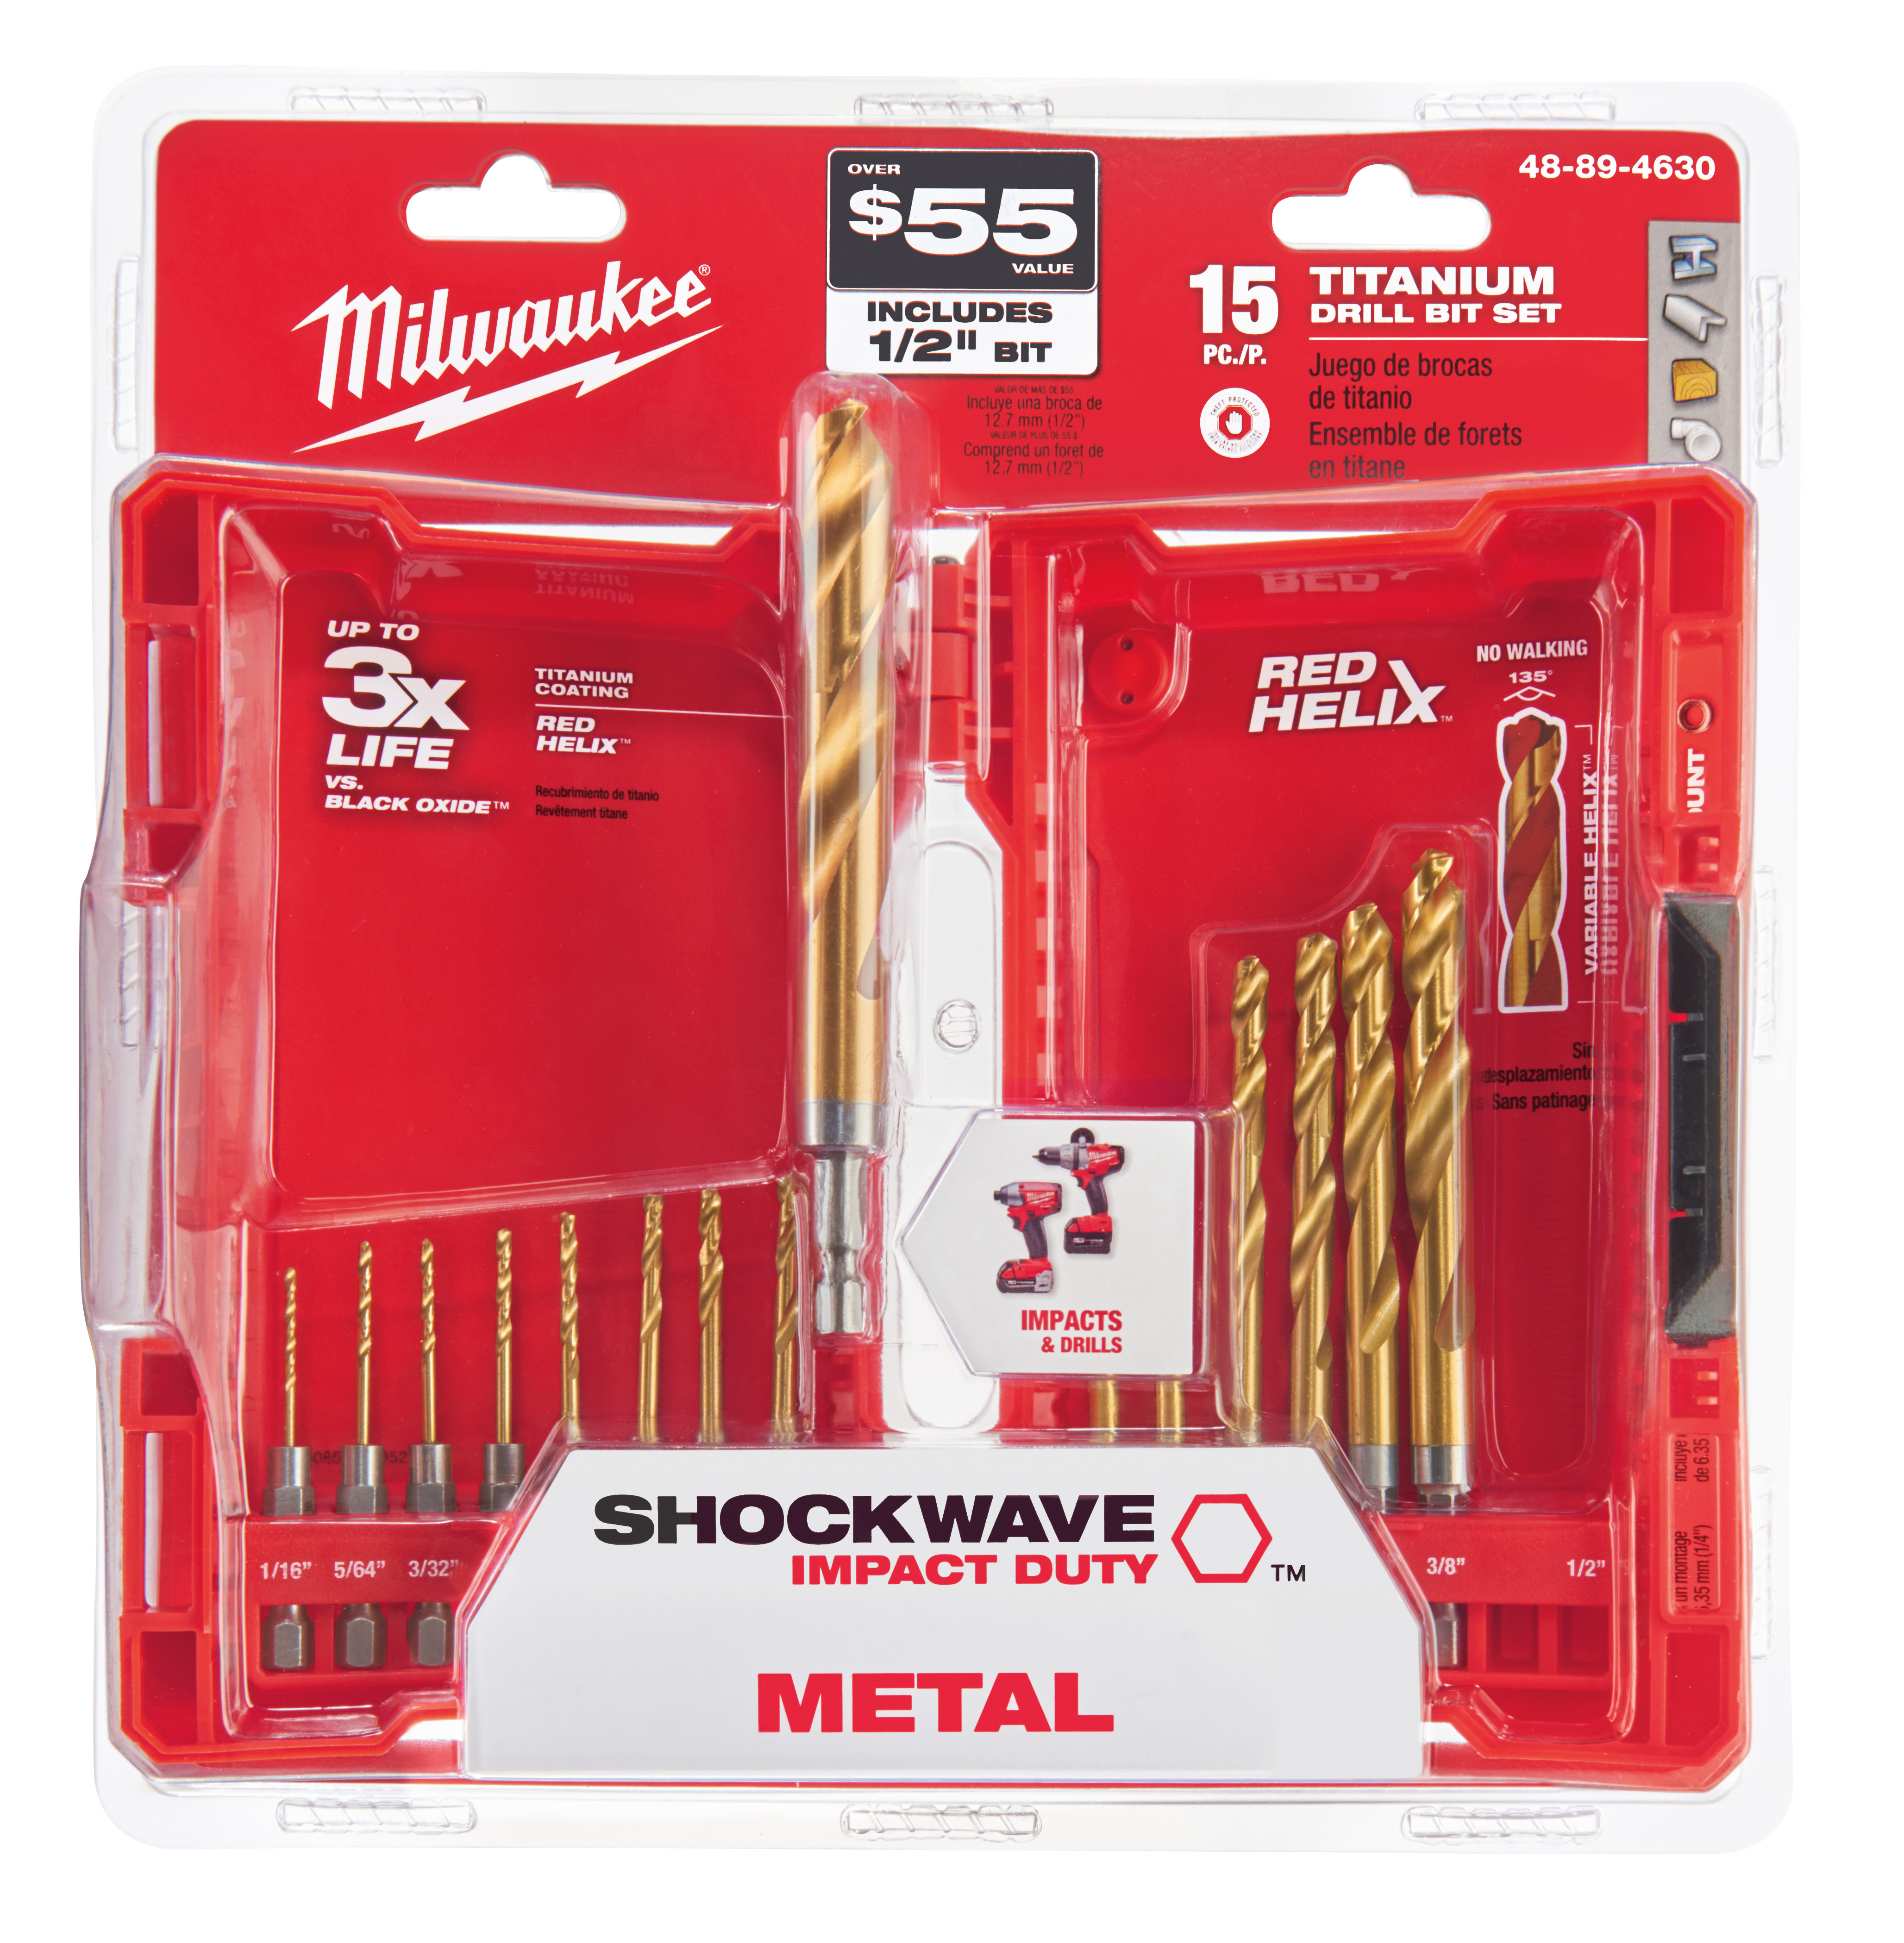 Milwaukee 48-89-4630 15-Piece Titanium Nitride SHOCKWAVE™ Red Helix Kit